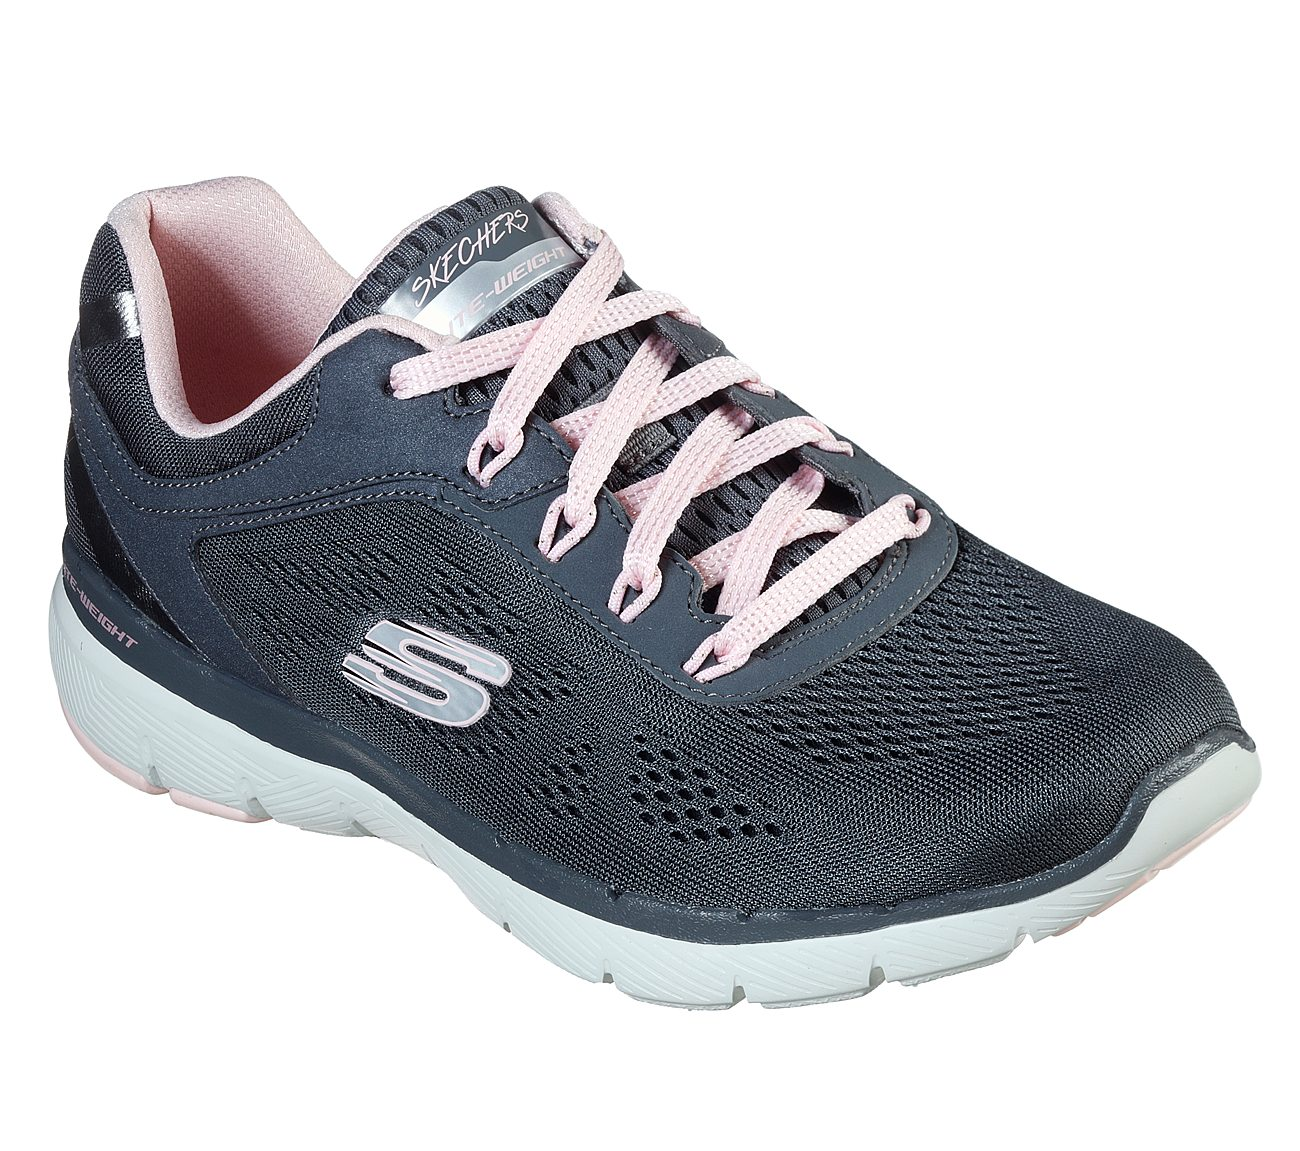 flex appeal memory foam skechers